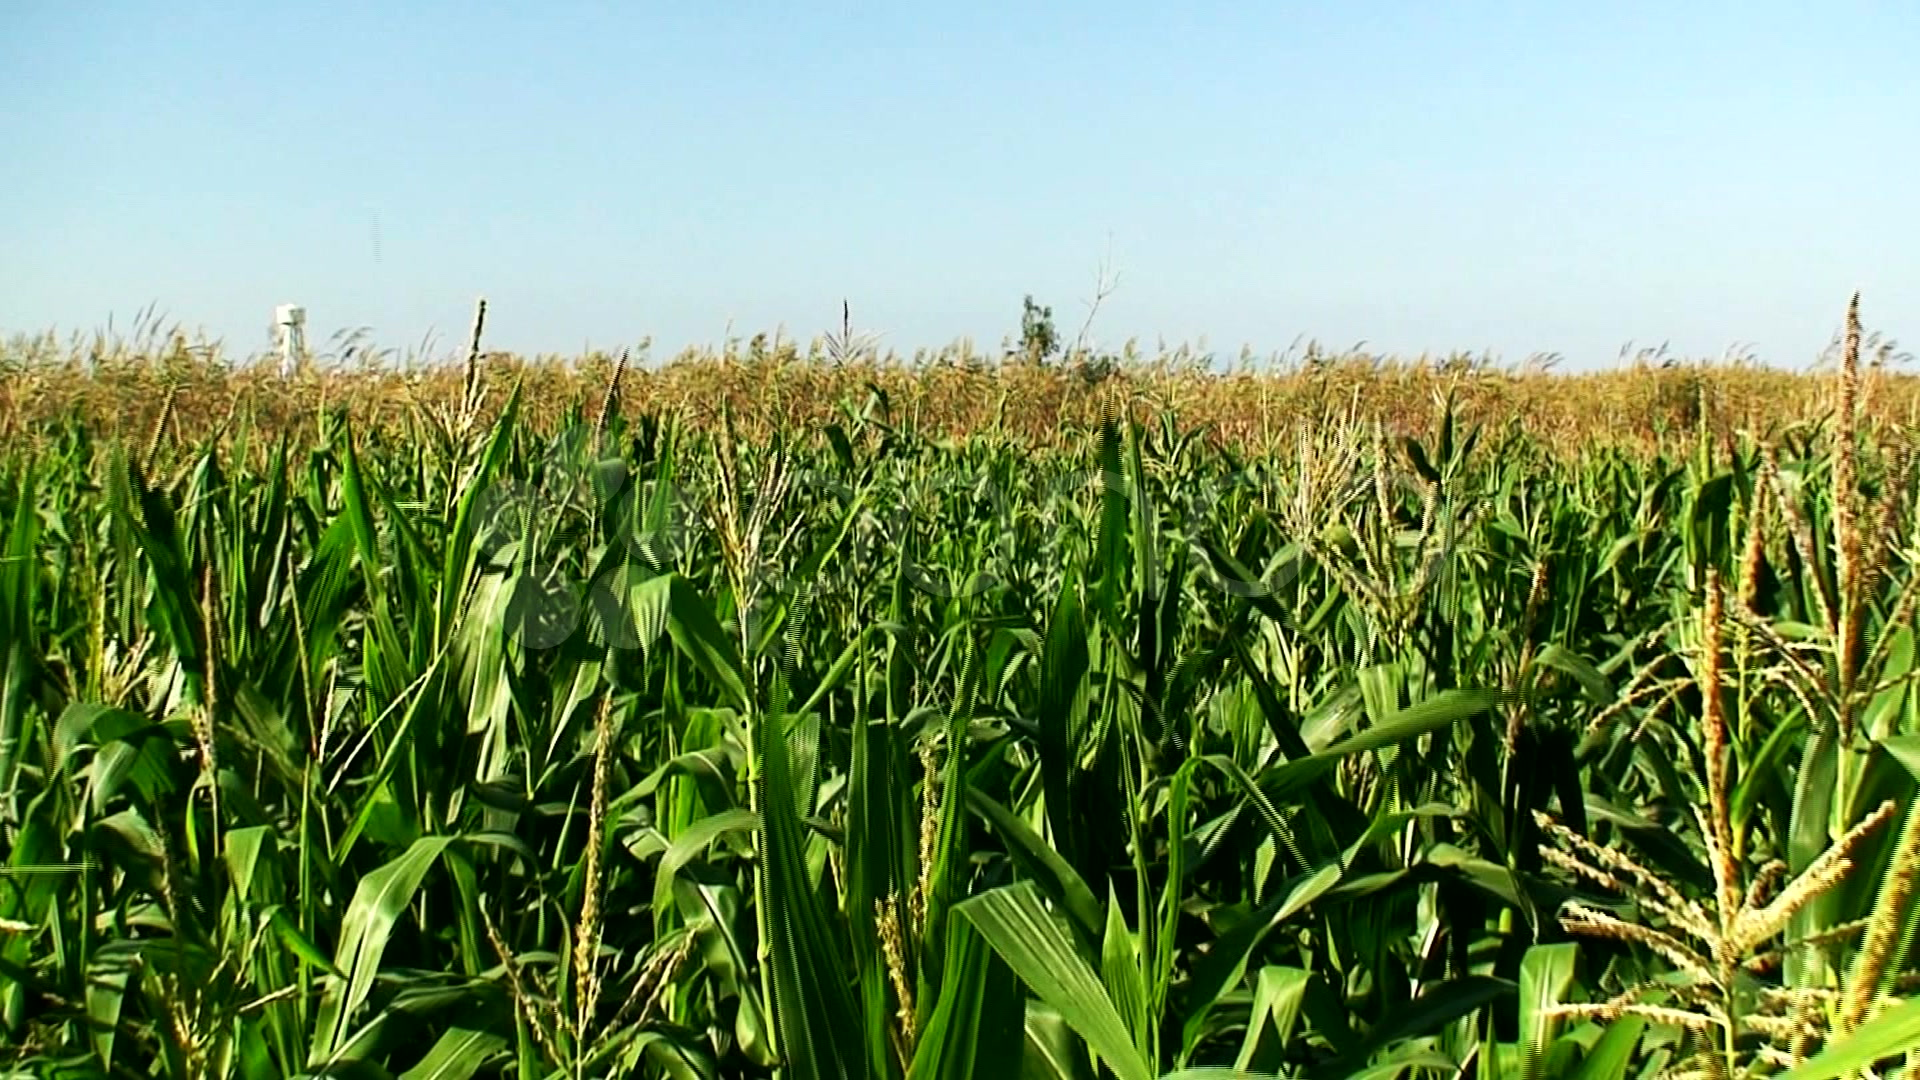 corn field download - photo #46